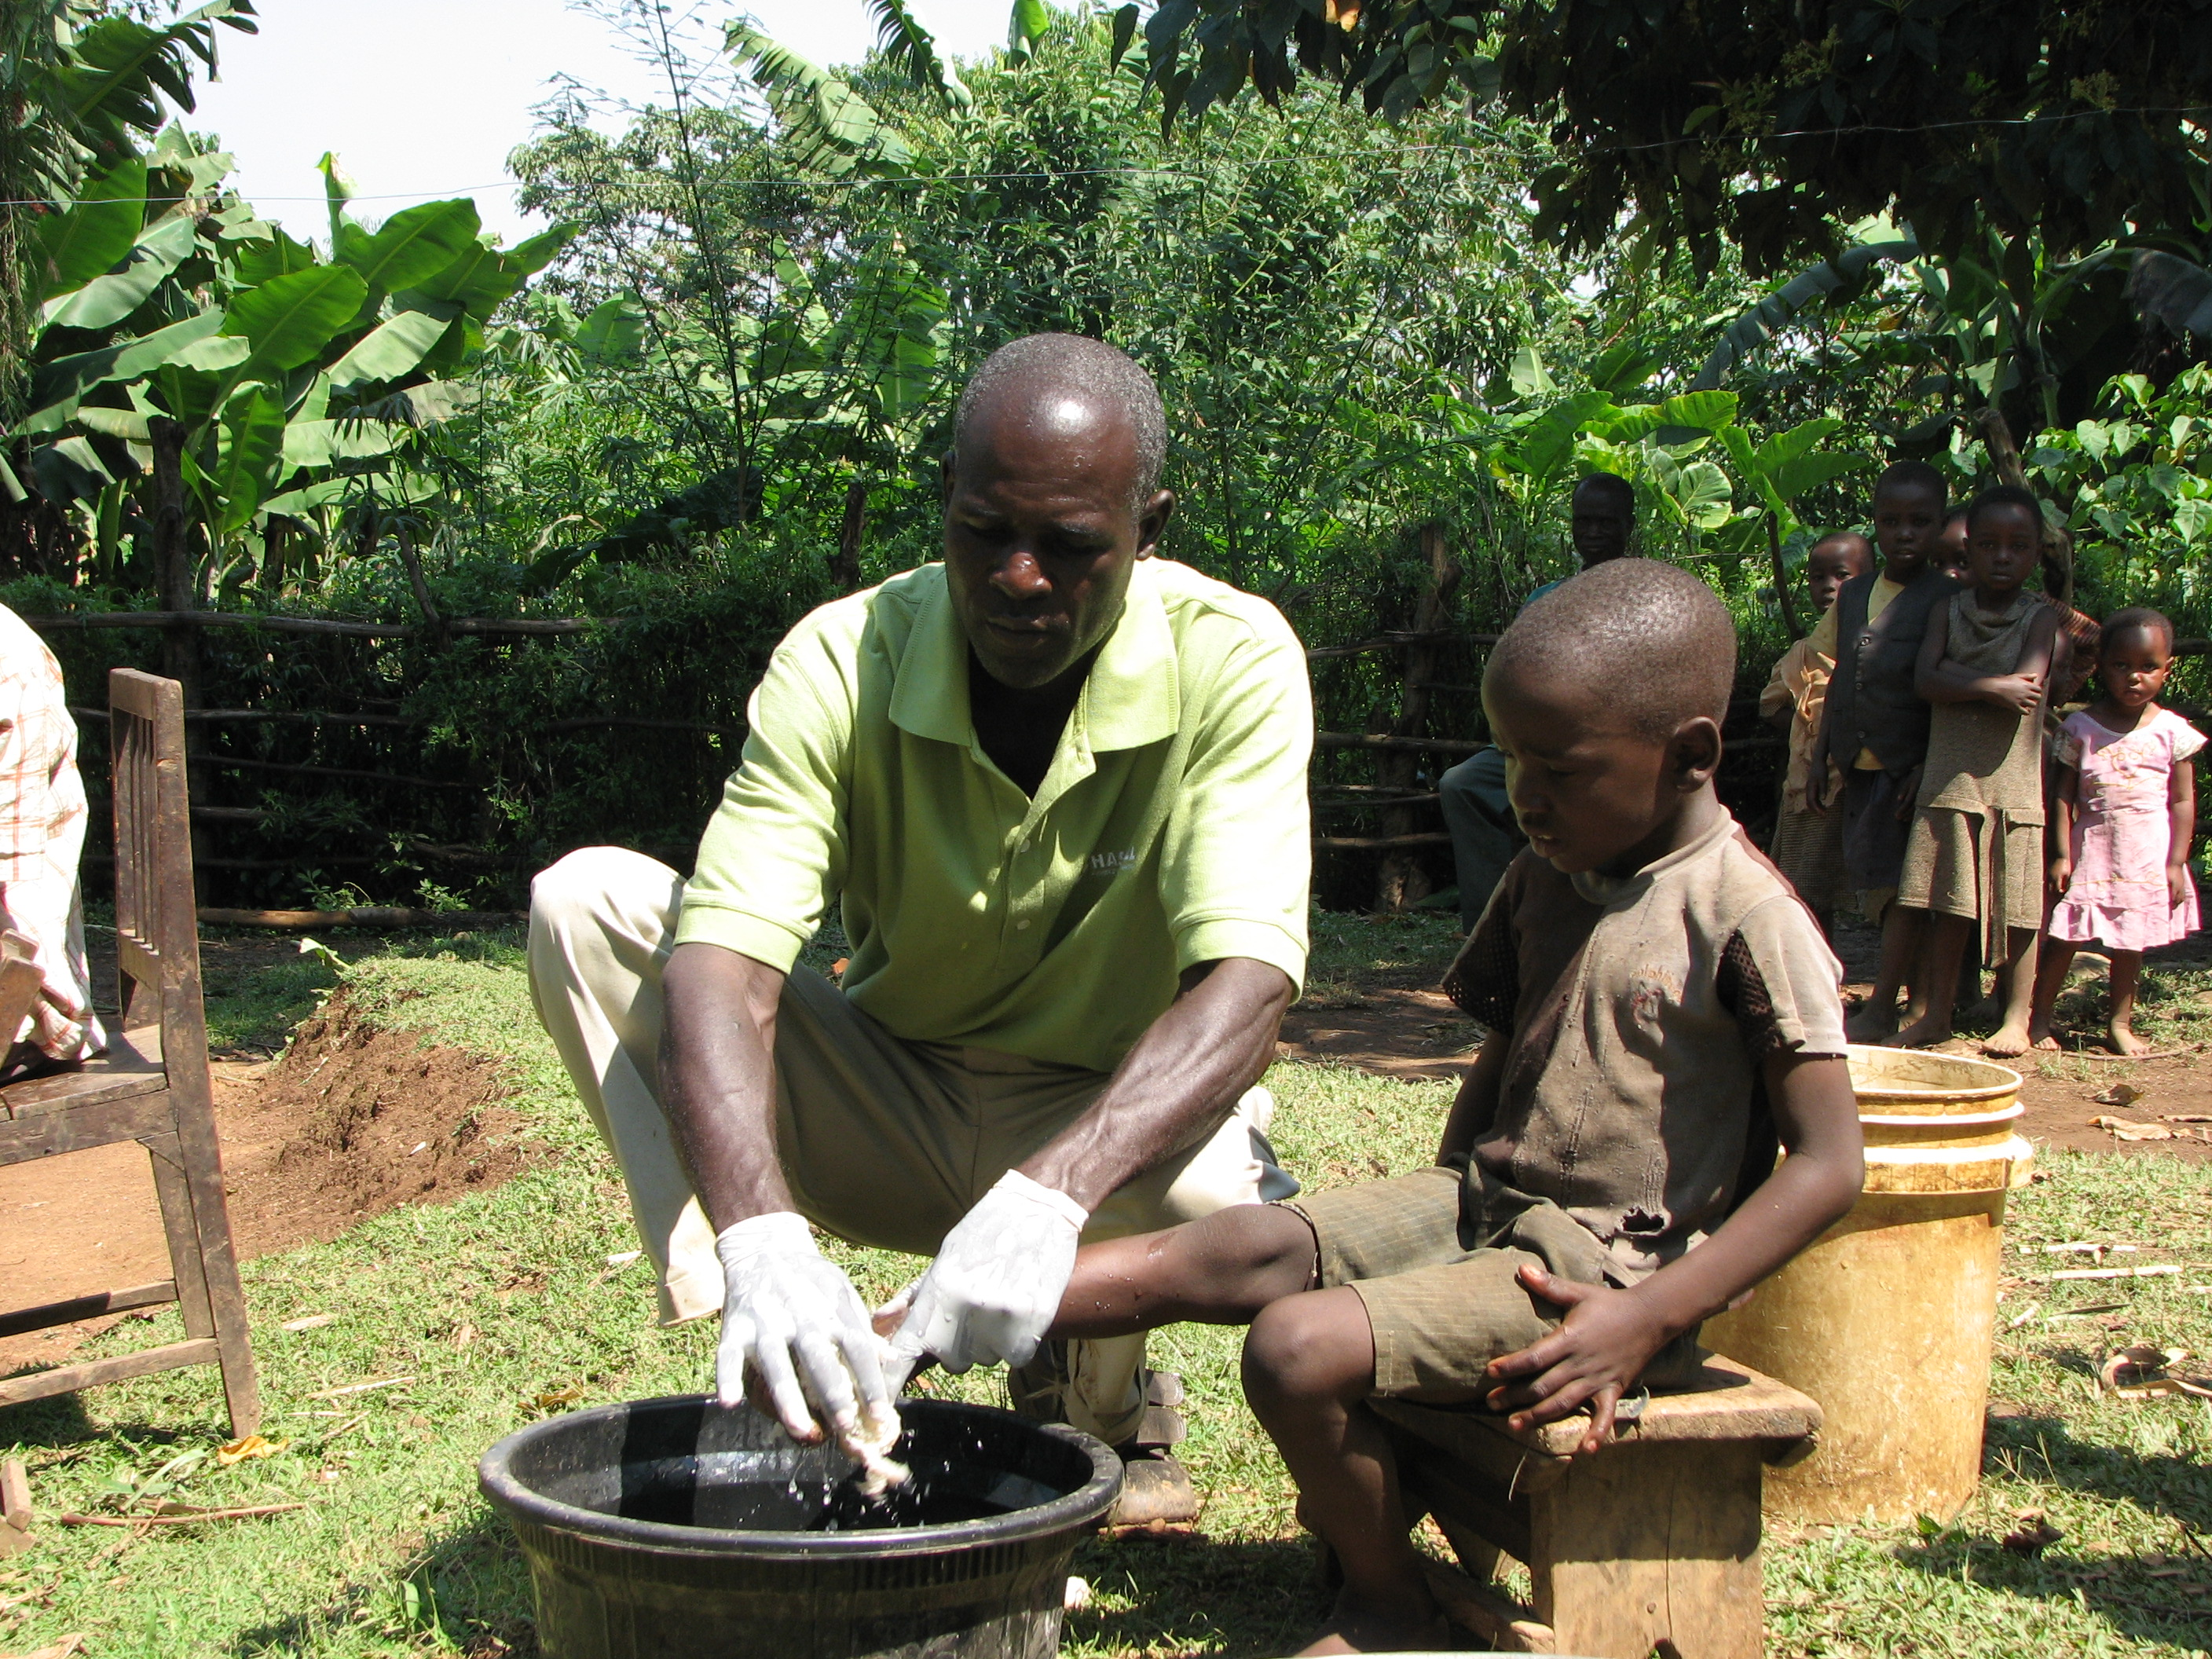 Fred shisanya treating a child for jiggers